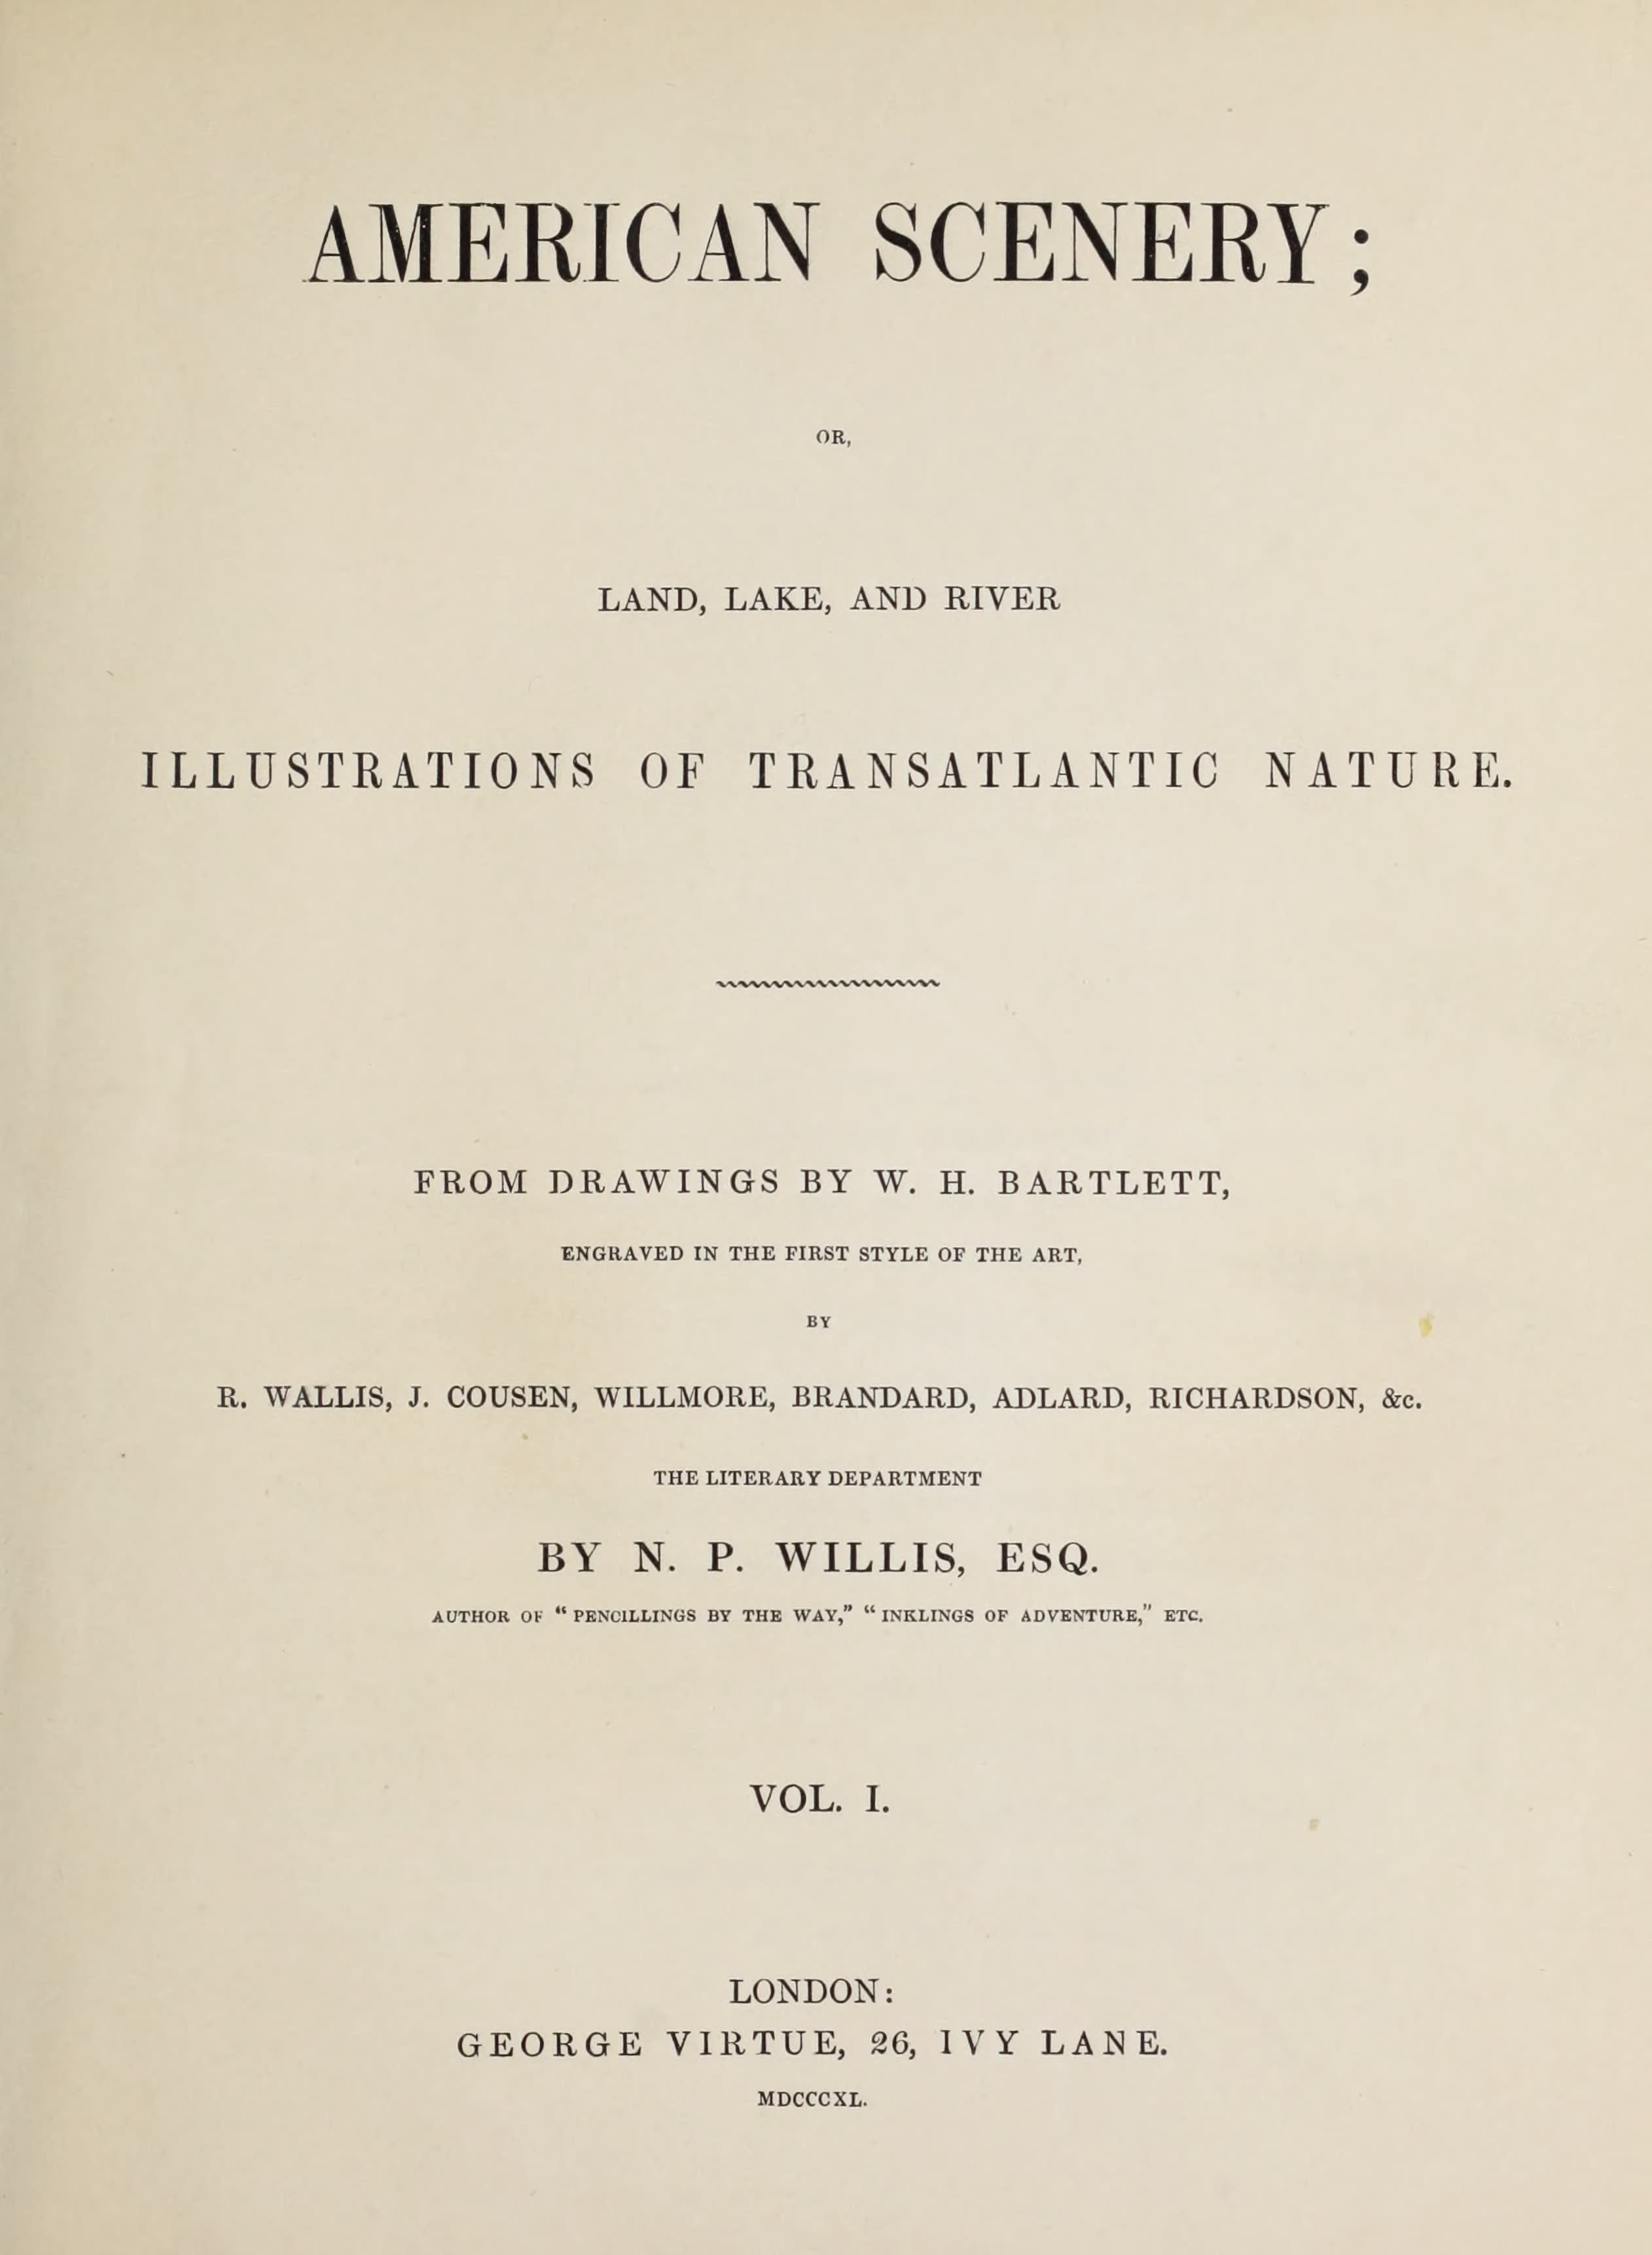 American Scenery Vol. I - Title Page (1840)